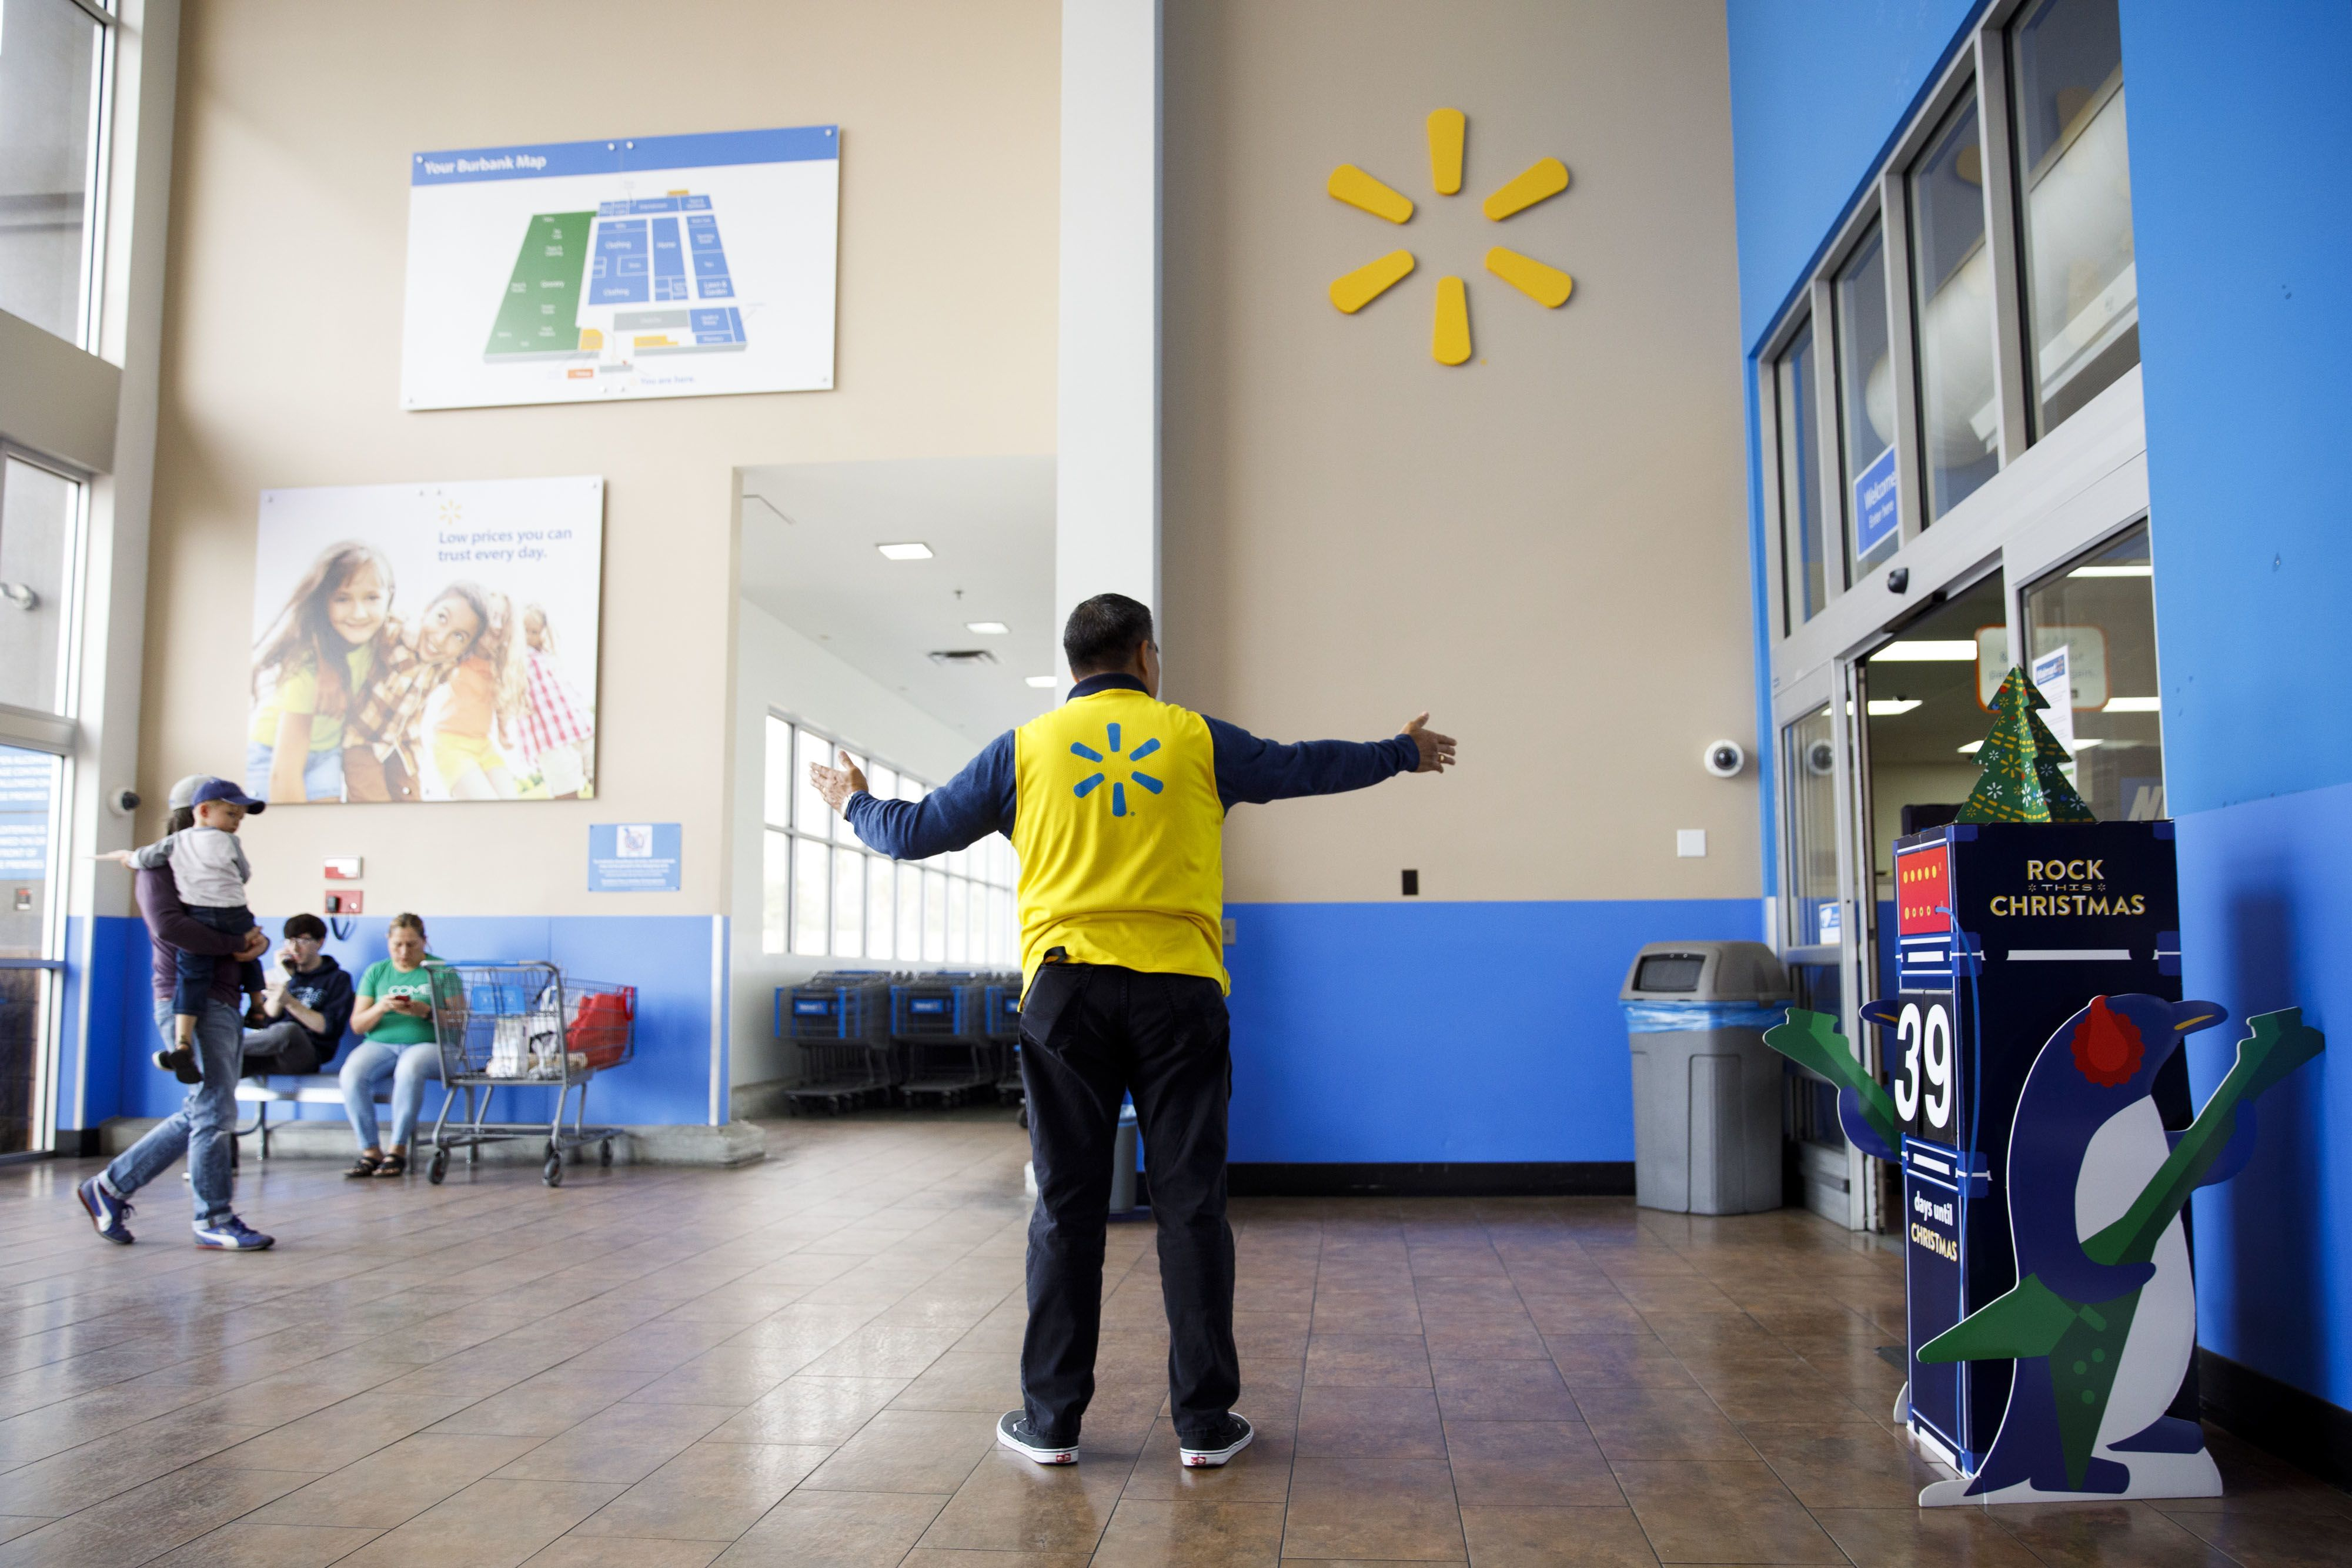 Walmart is testing ways to trim the size of its store